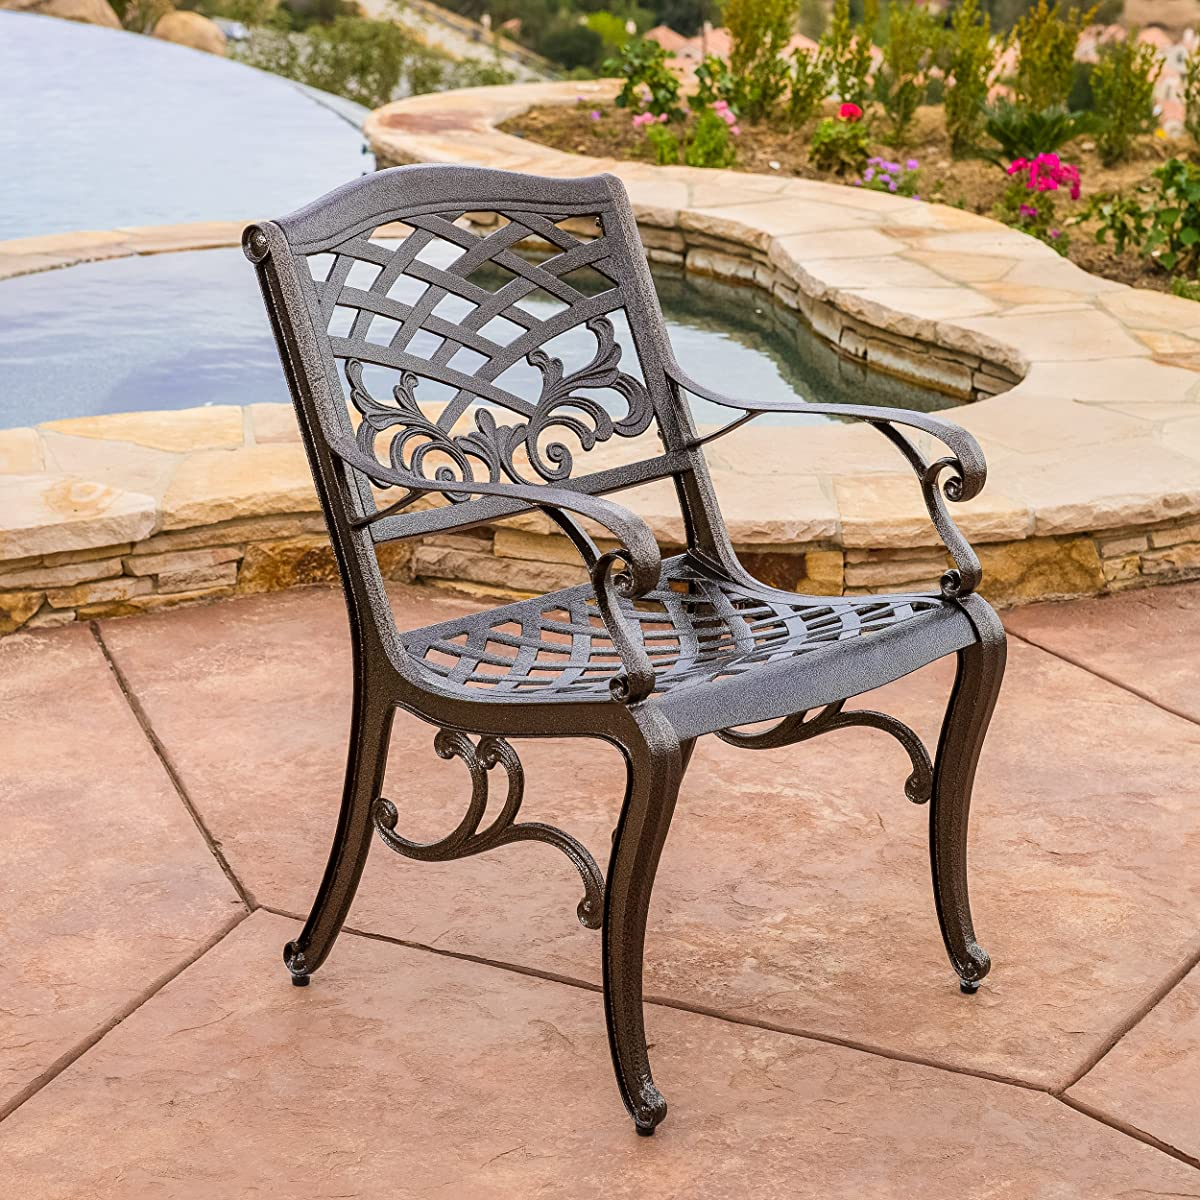 Covington Antique Bronze Outdoor Patio Furniture 5pcs Cast Aluminum Dining Set